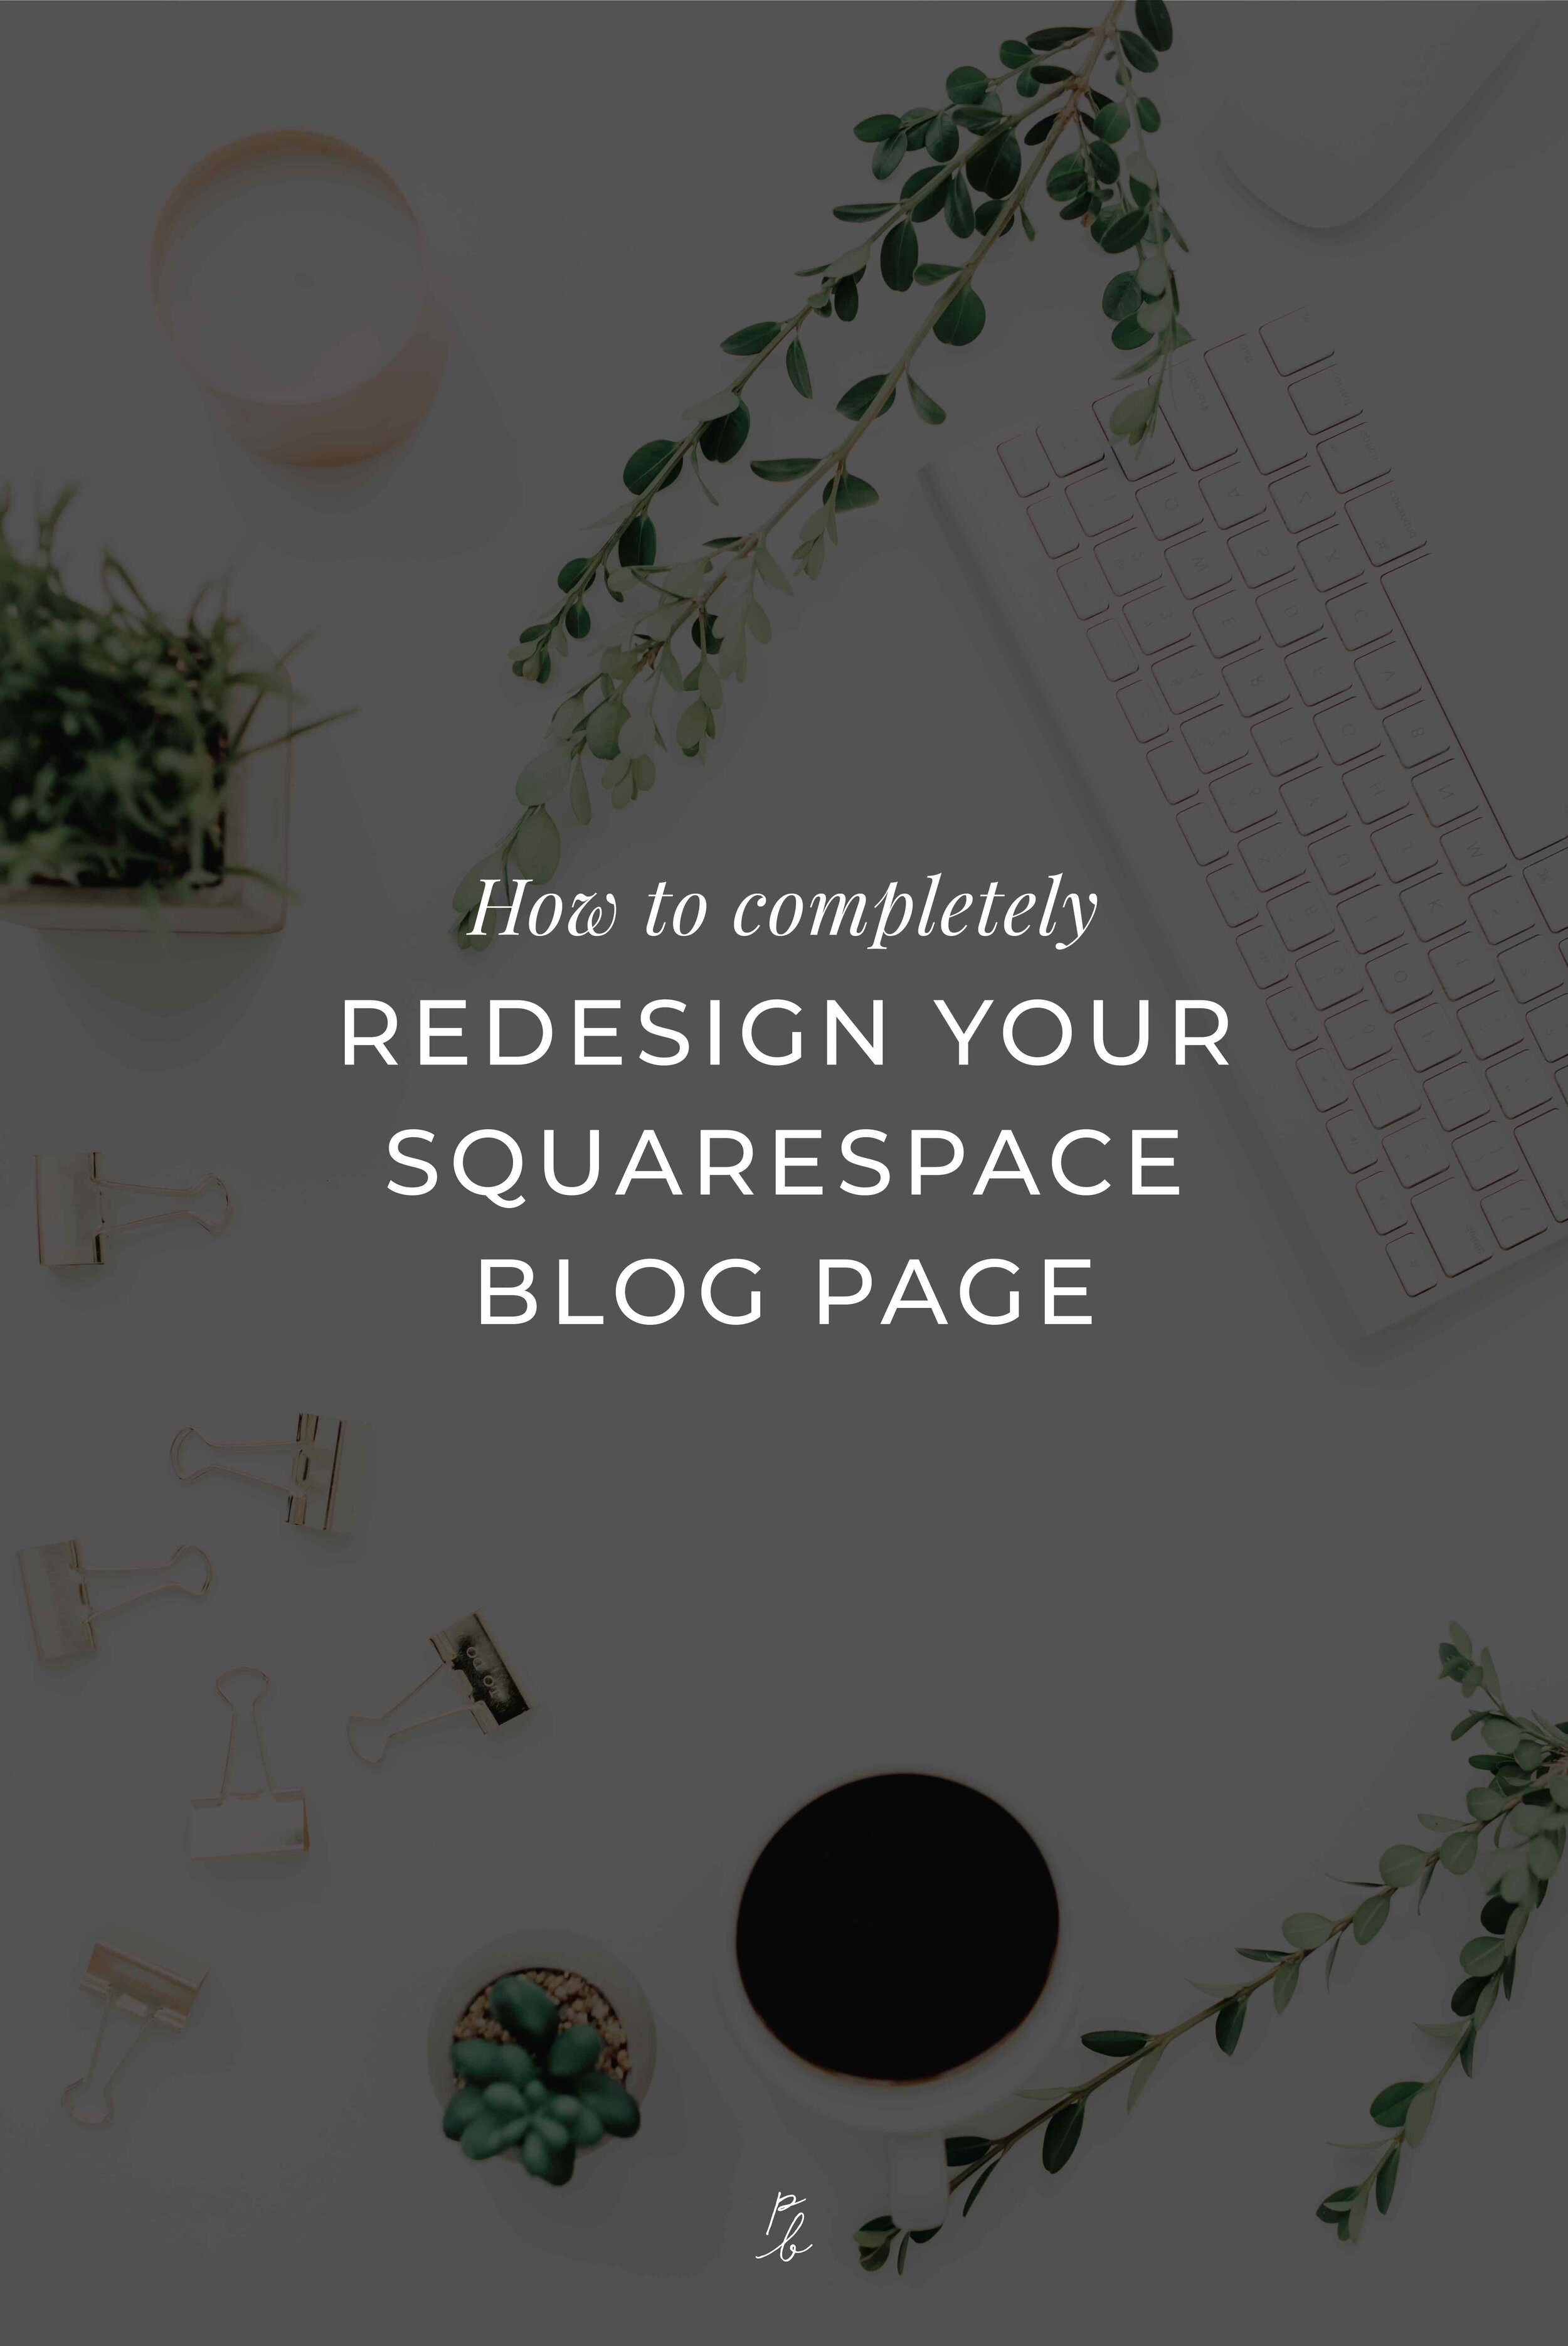 How to completely redesign your Squarespace blog page-07.jpeg